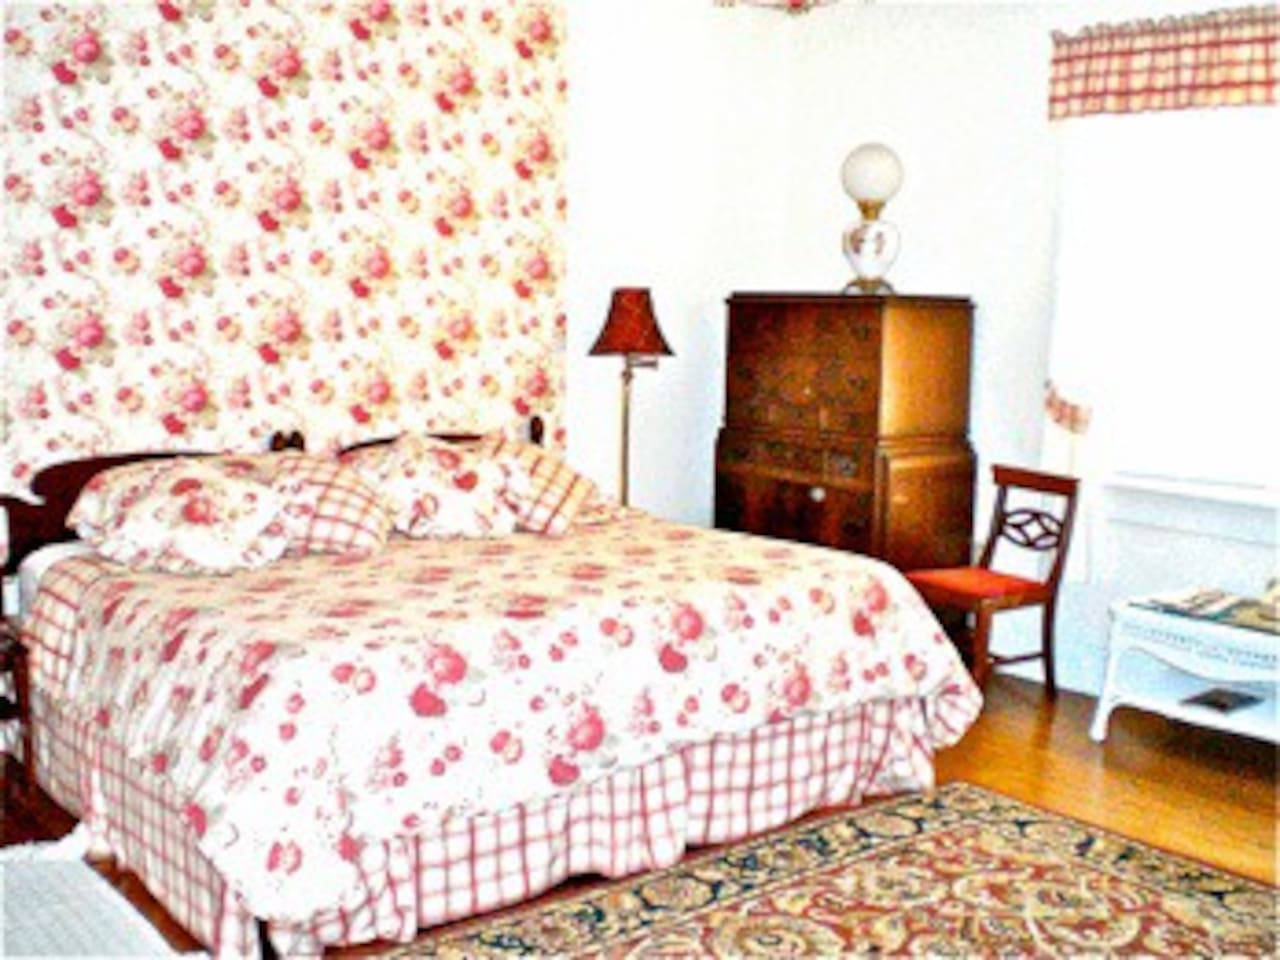 The Rose Room is a spacious, light-filled room with a floral design, overlooking the gardens and forests to the south.  There is also a  twin bed  in an alcove with views to the west.